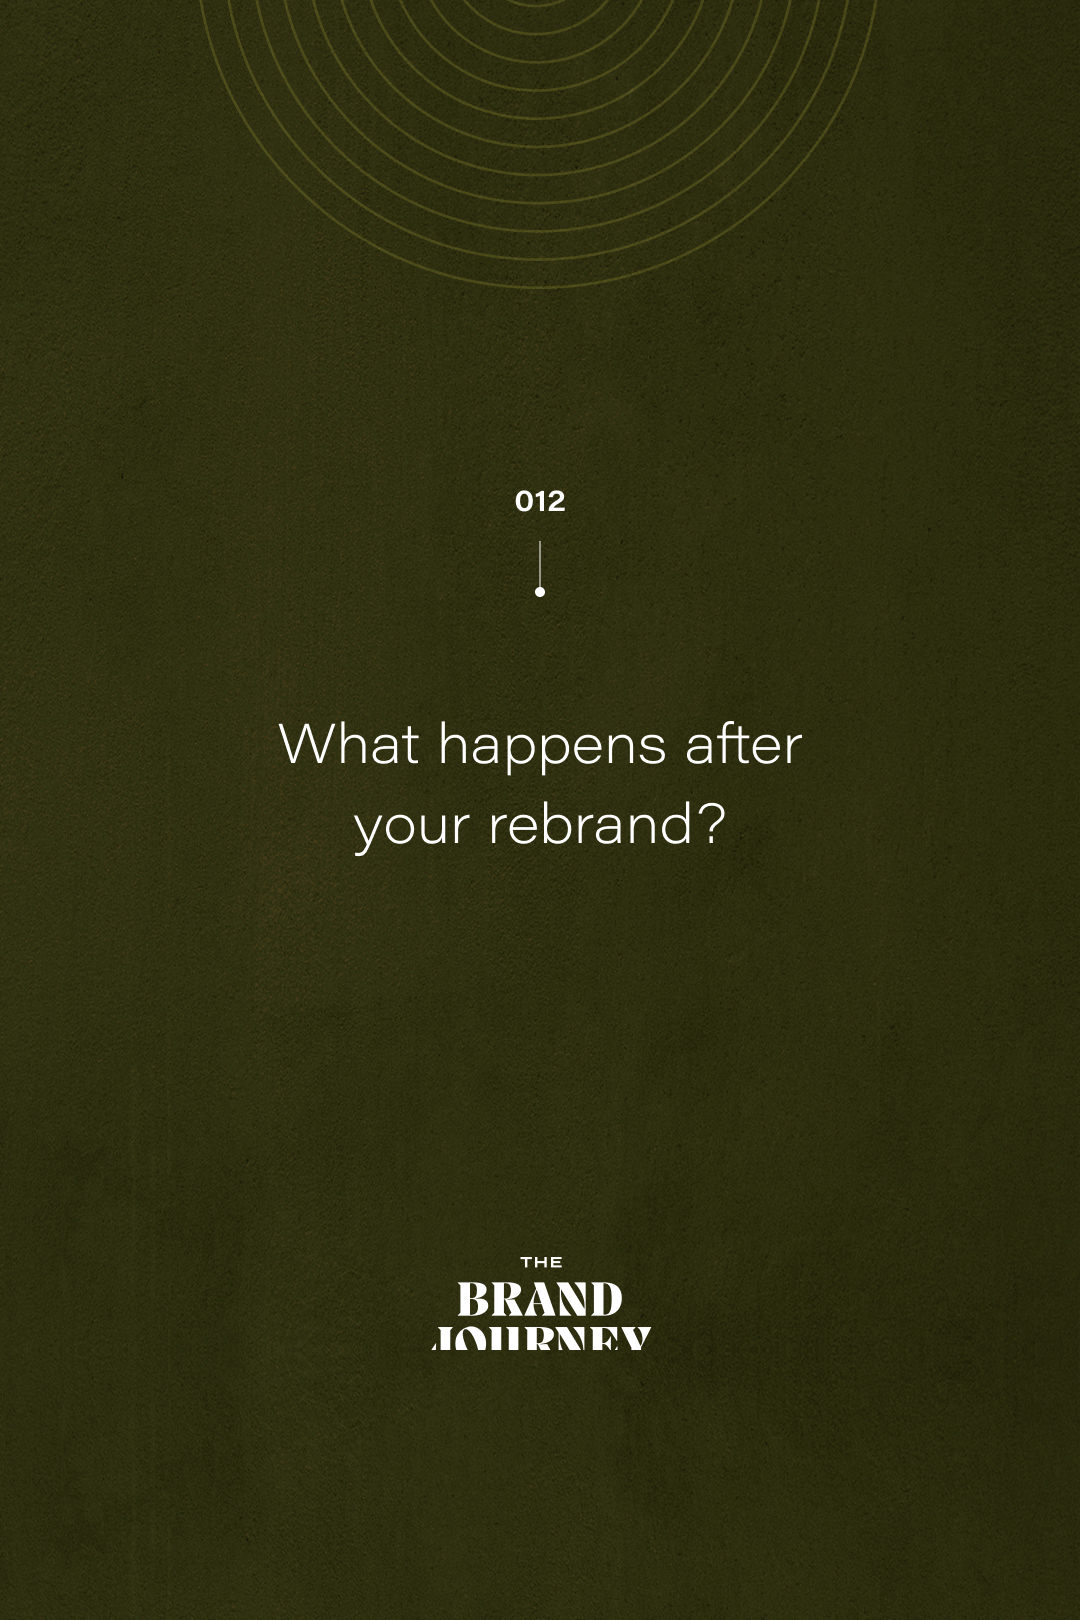 What happens after your rebrand?